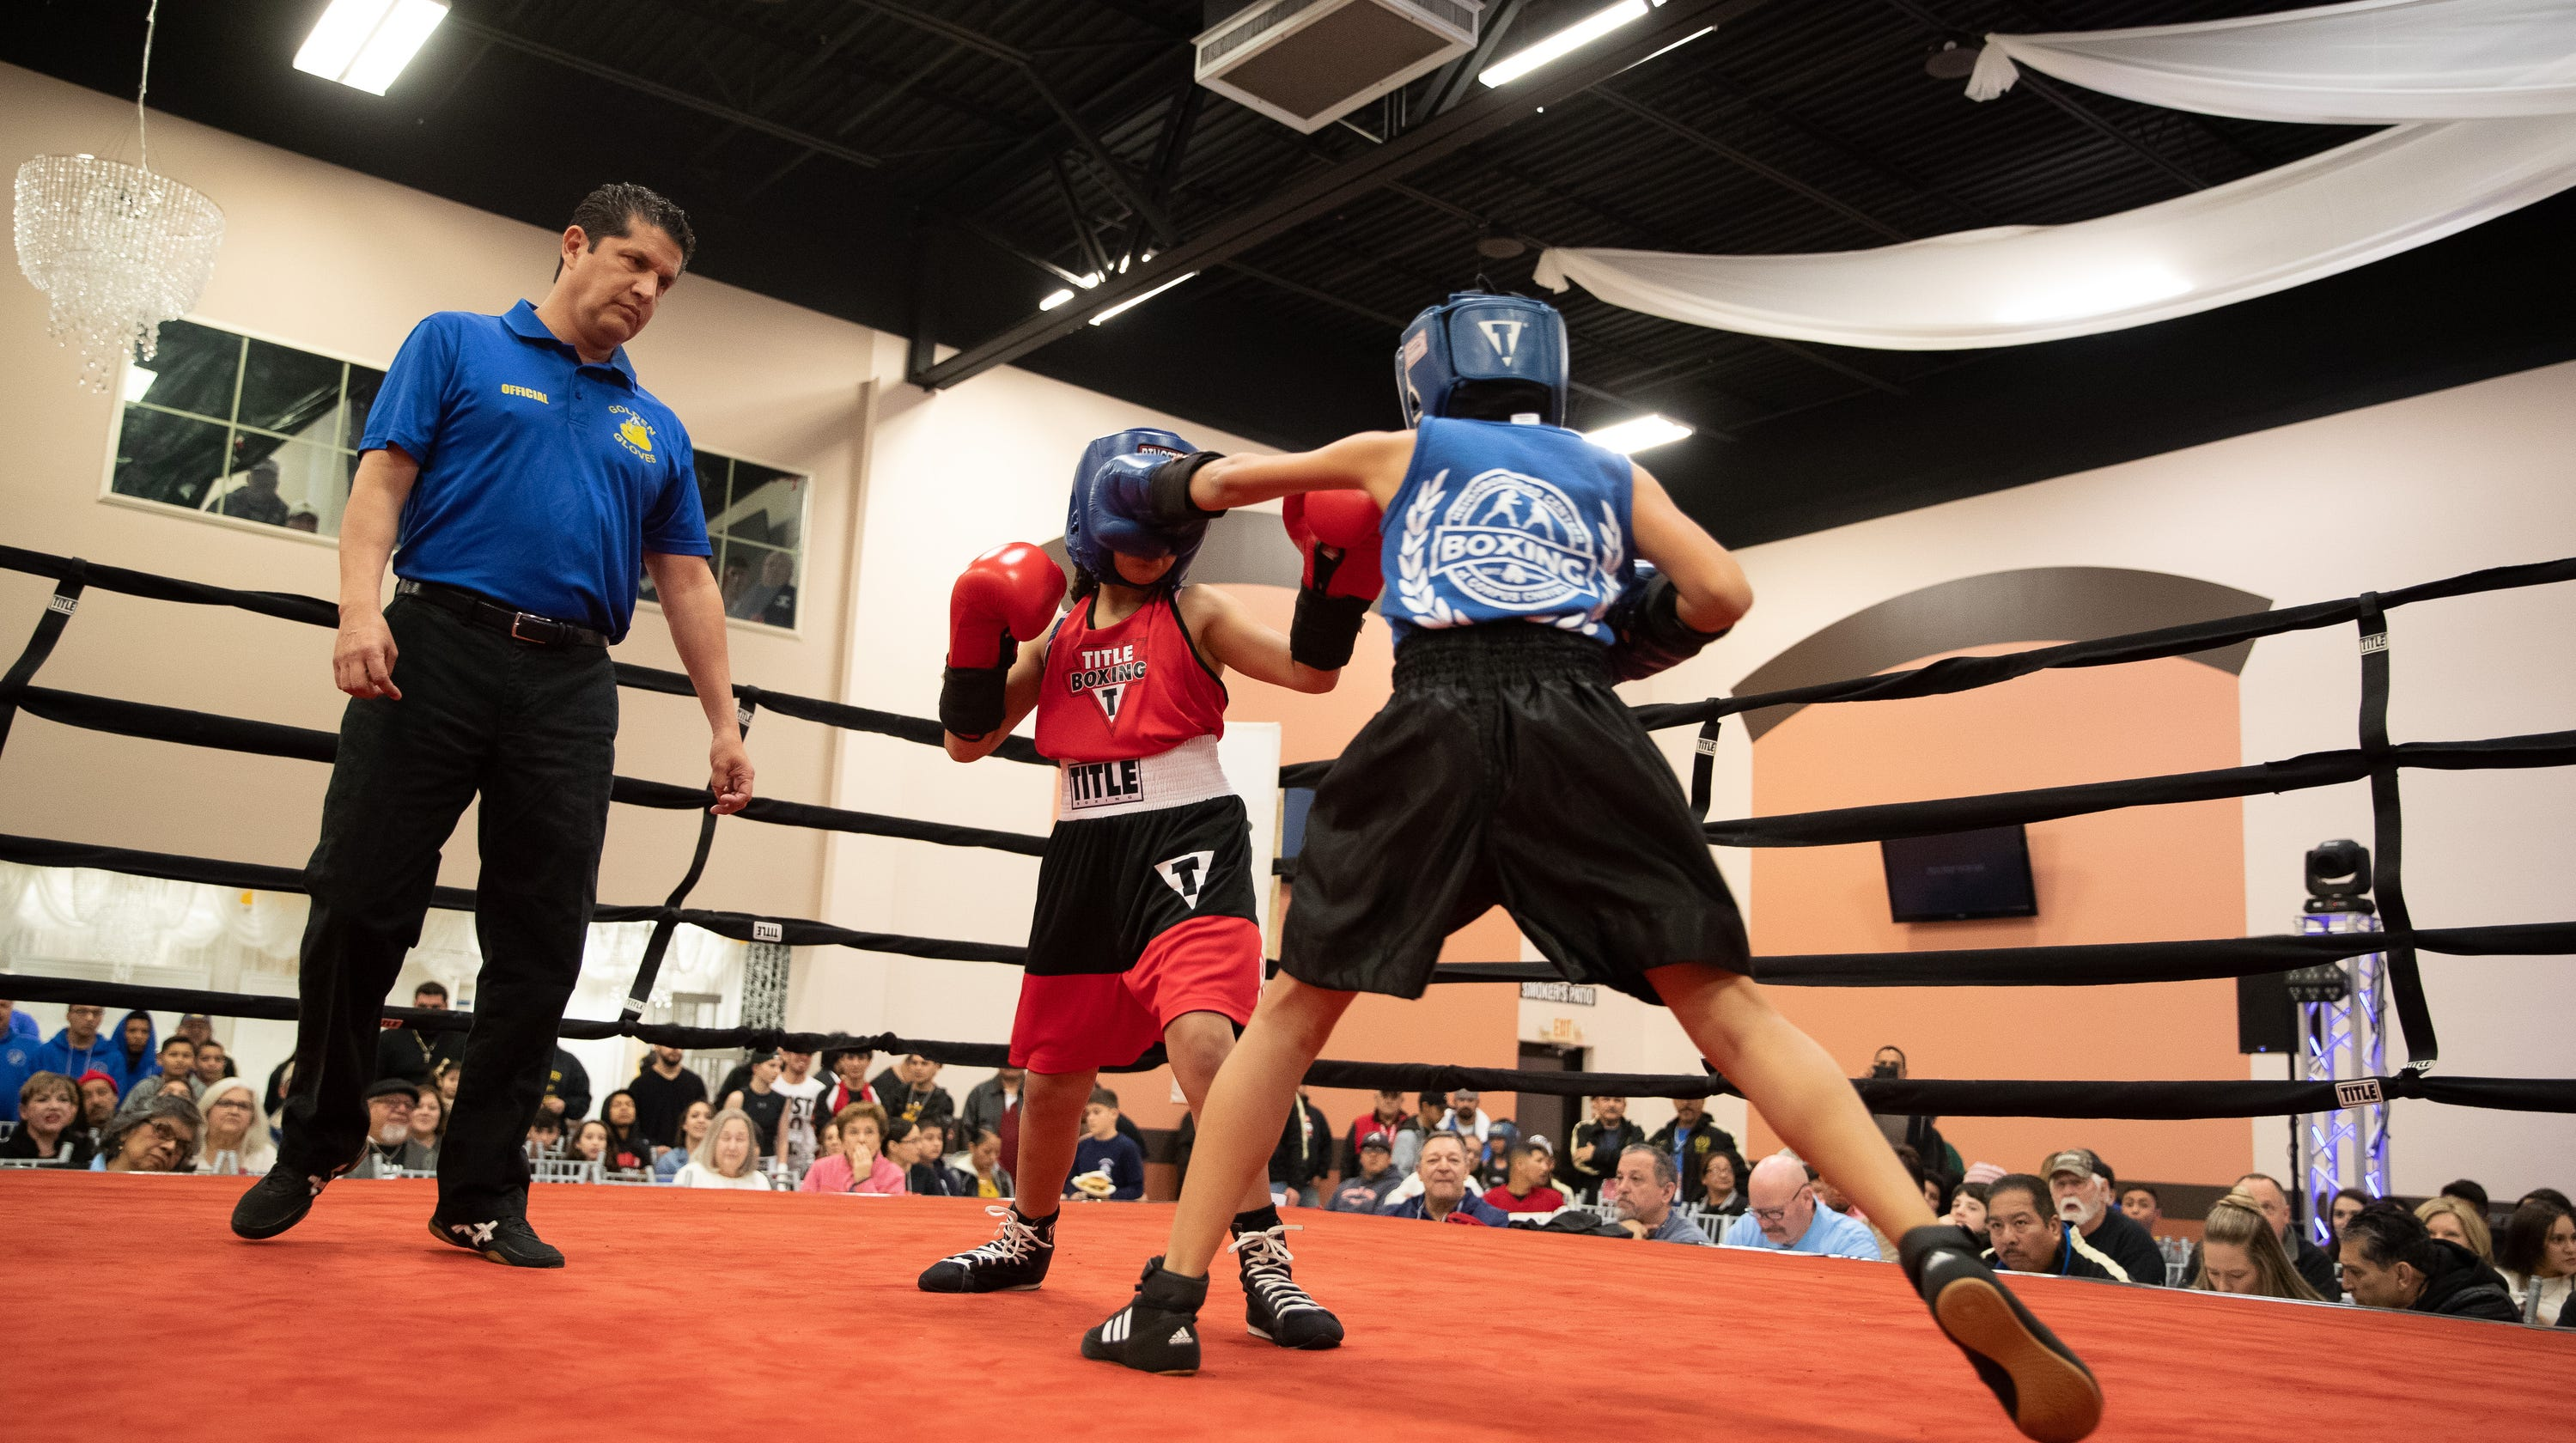 Alexis Texas Boxing corpus christi's contreras win with walk over at state